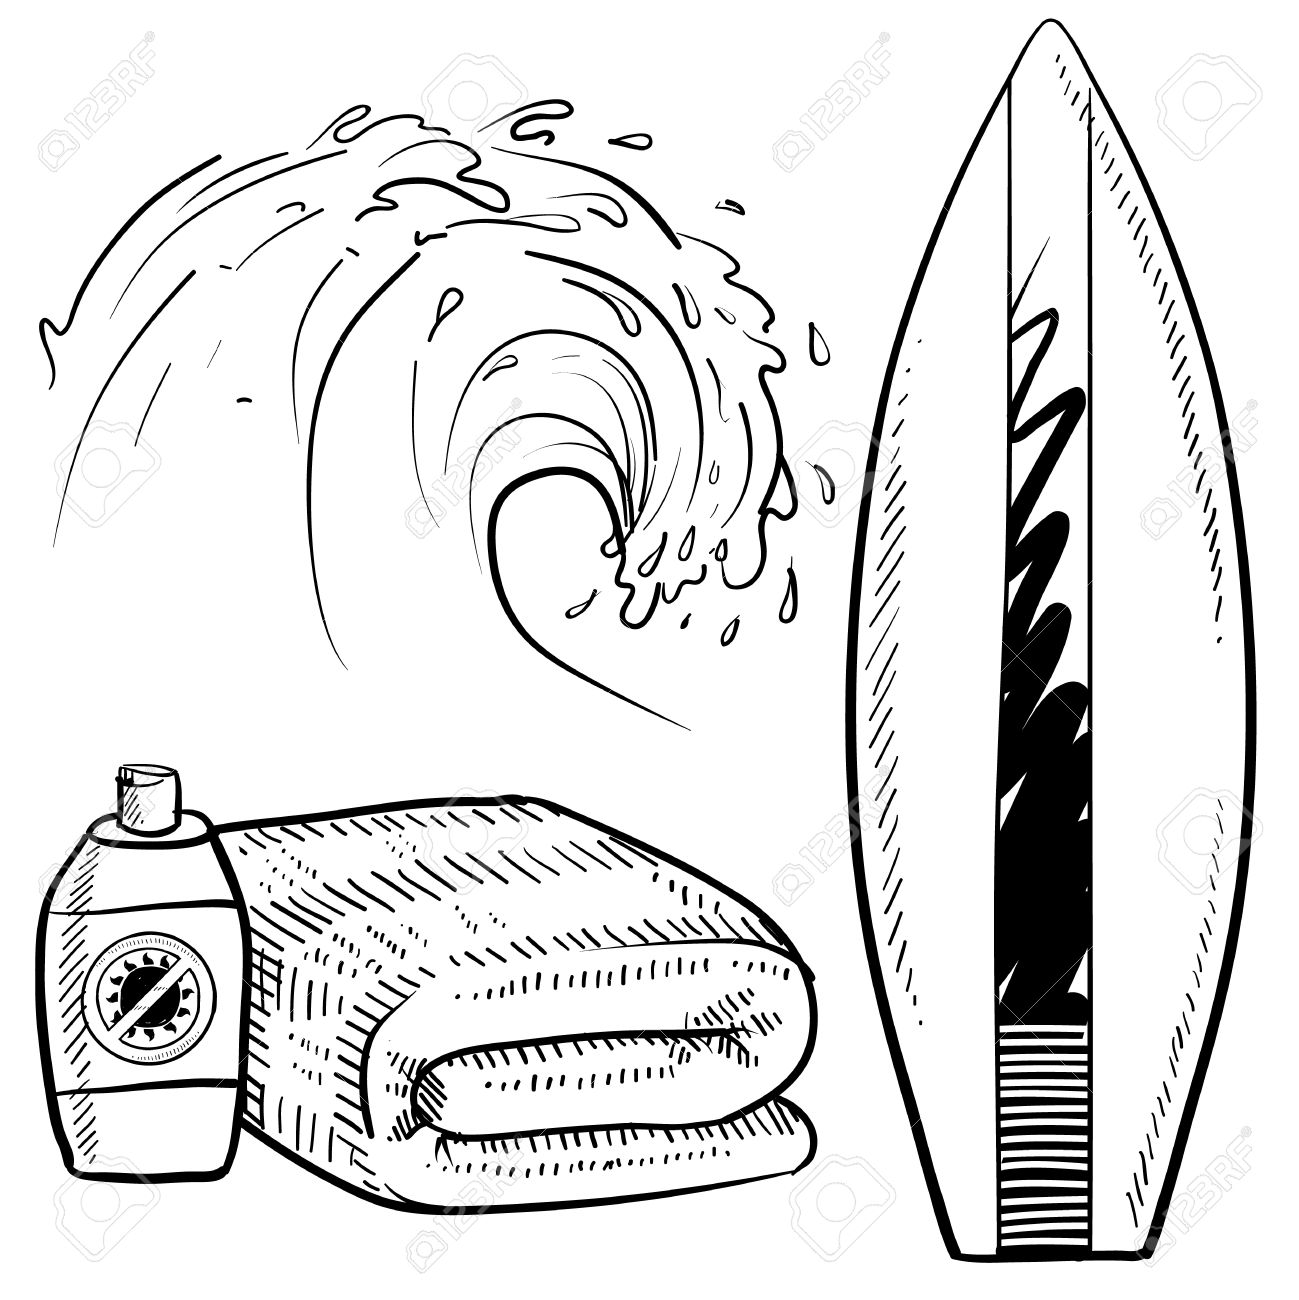 15 656 surfboards stock illustrations cliparts and royalty free